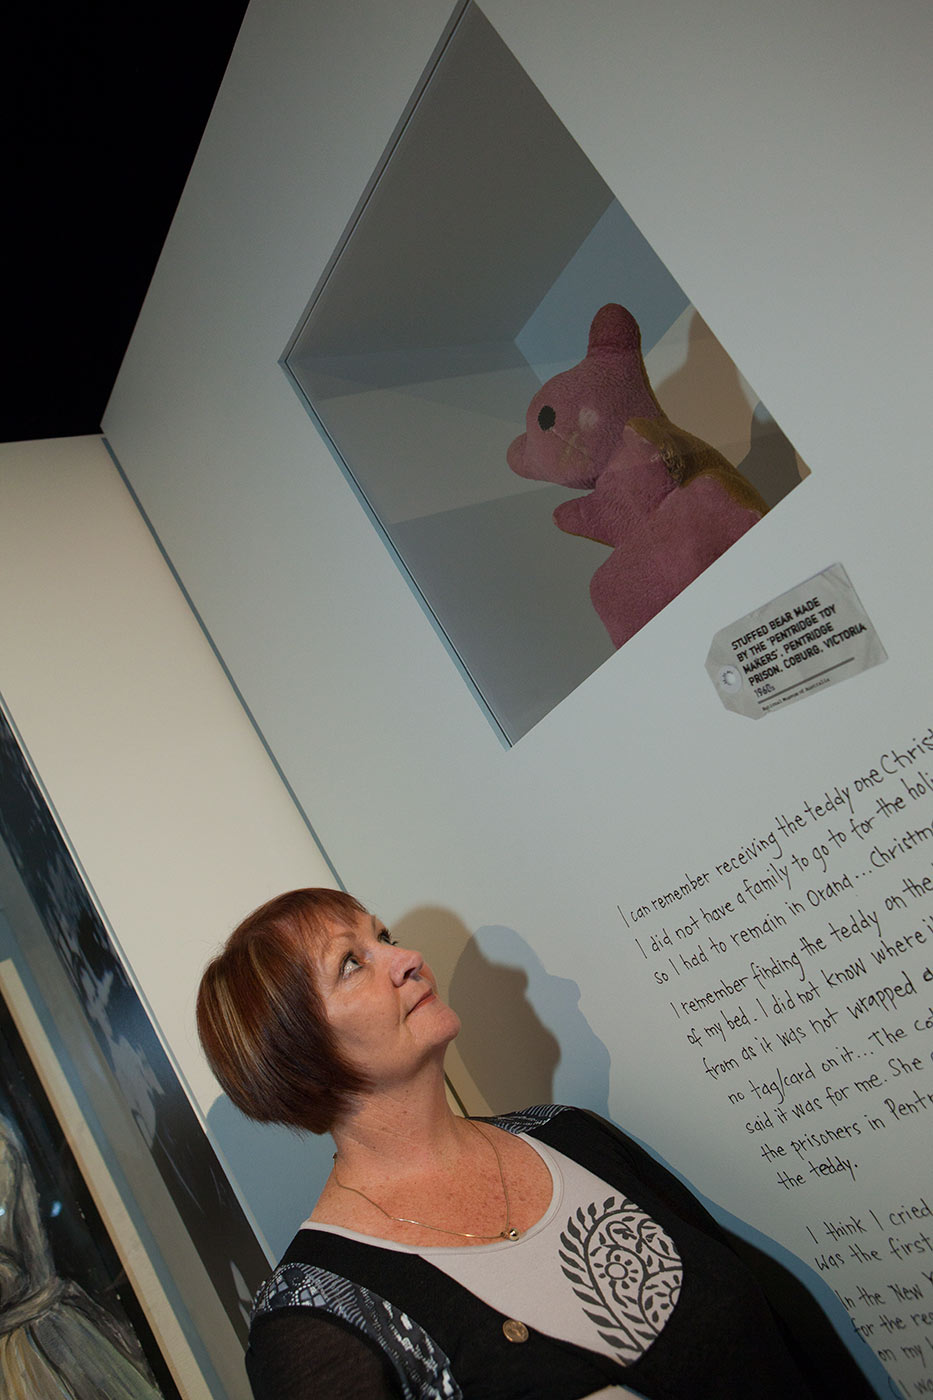 Colour photograph showing a woman standing beside an exhibition panel, gazing up at a small pink bear on display. - click to view larger image